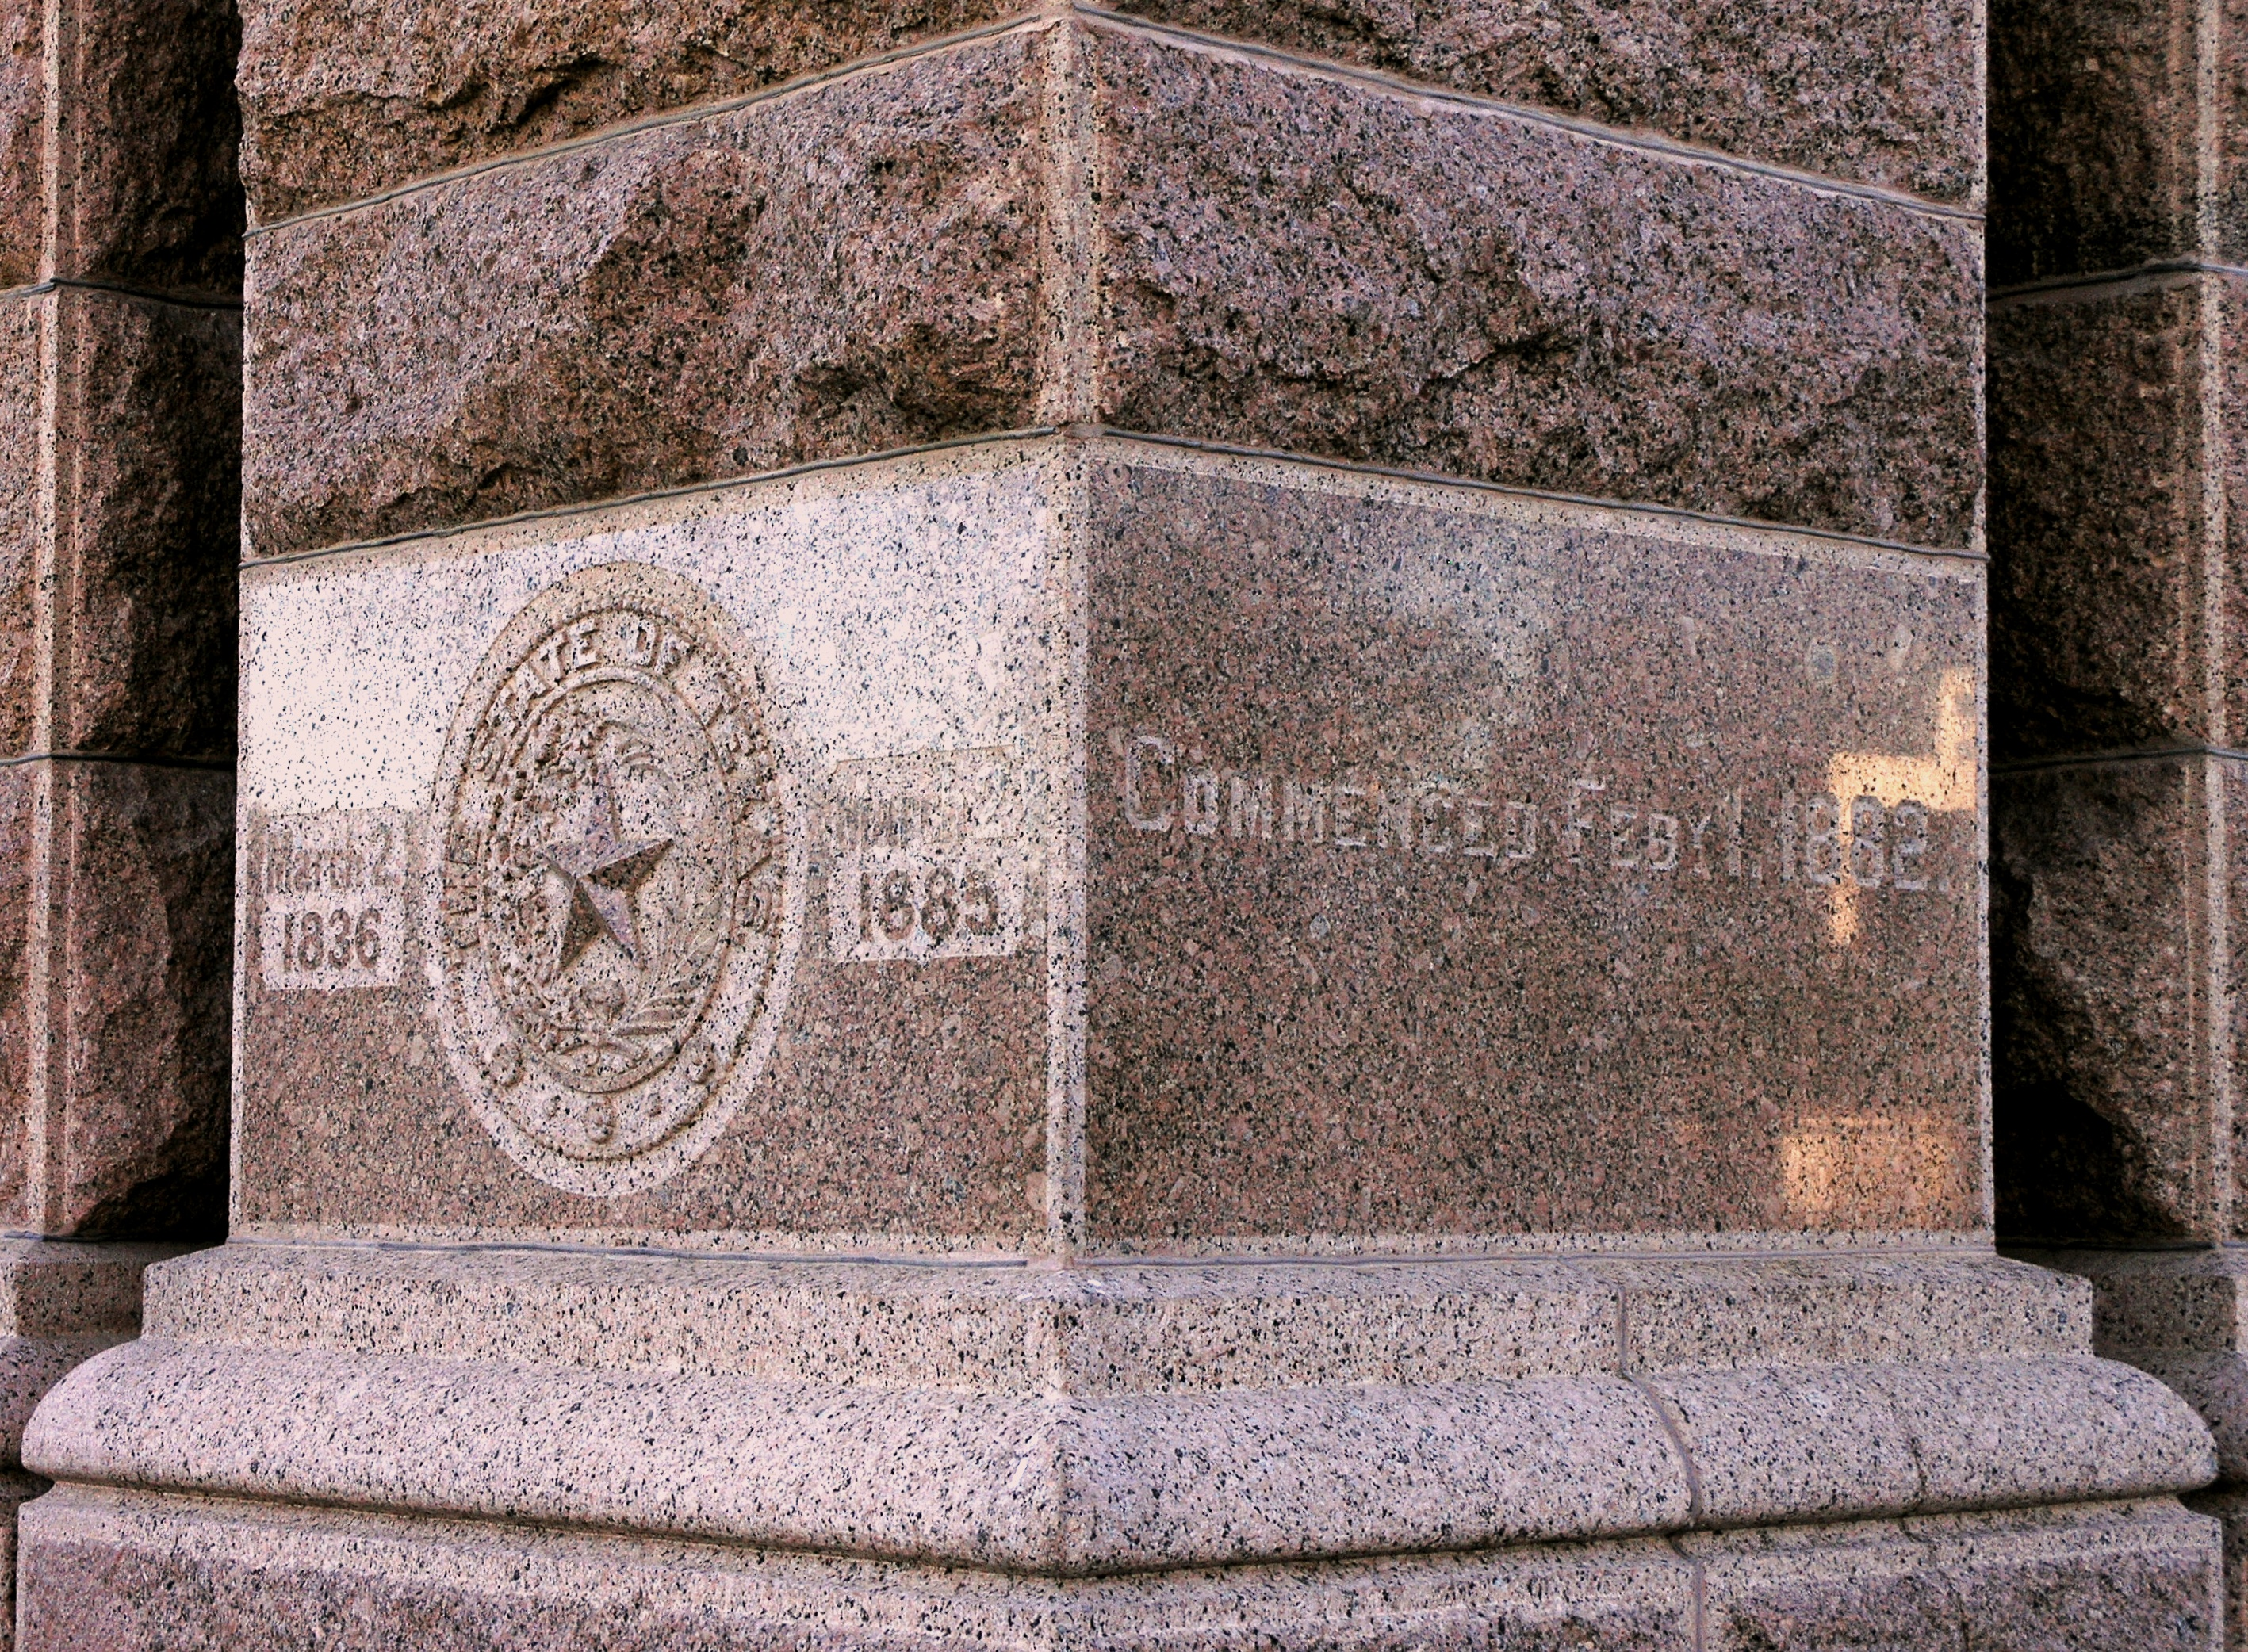 File:Cornerstone of Texas State Capitol building.JPG